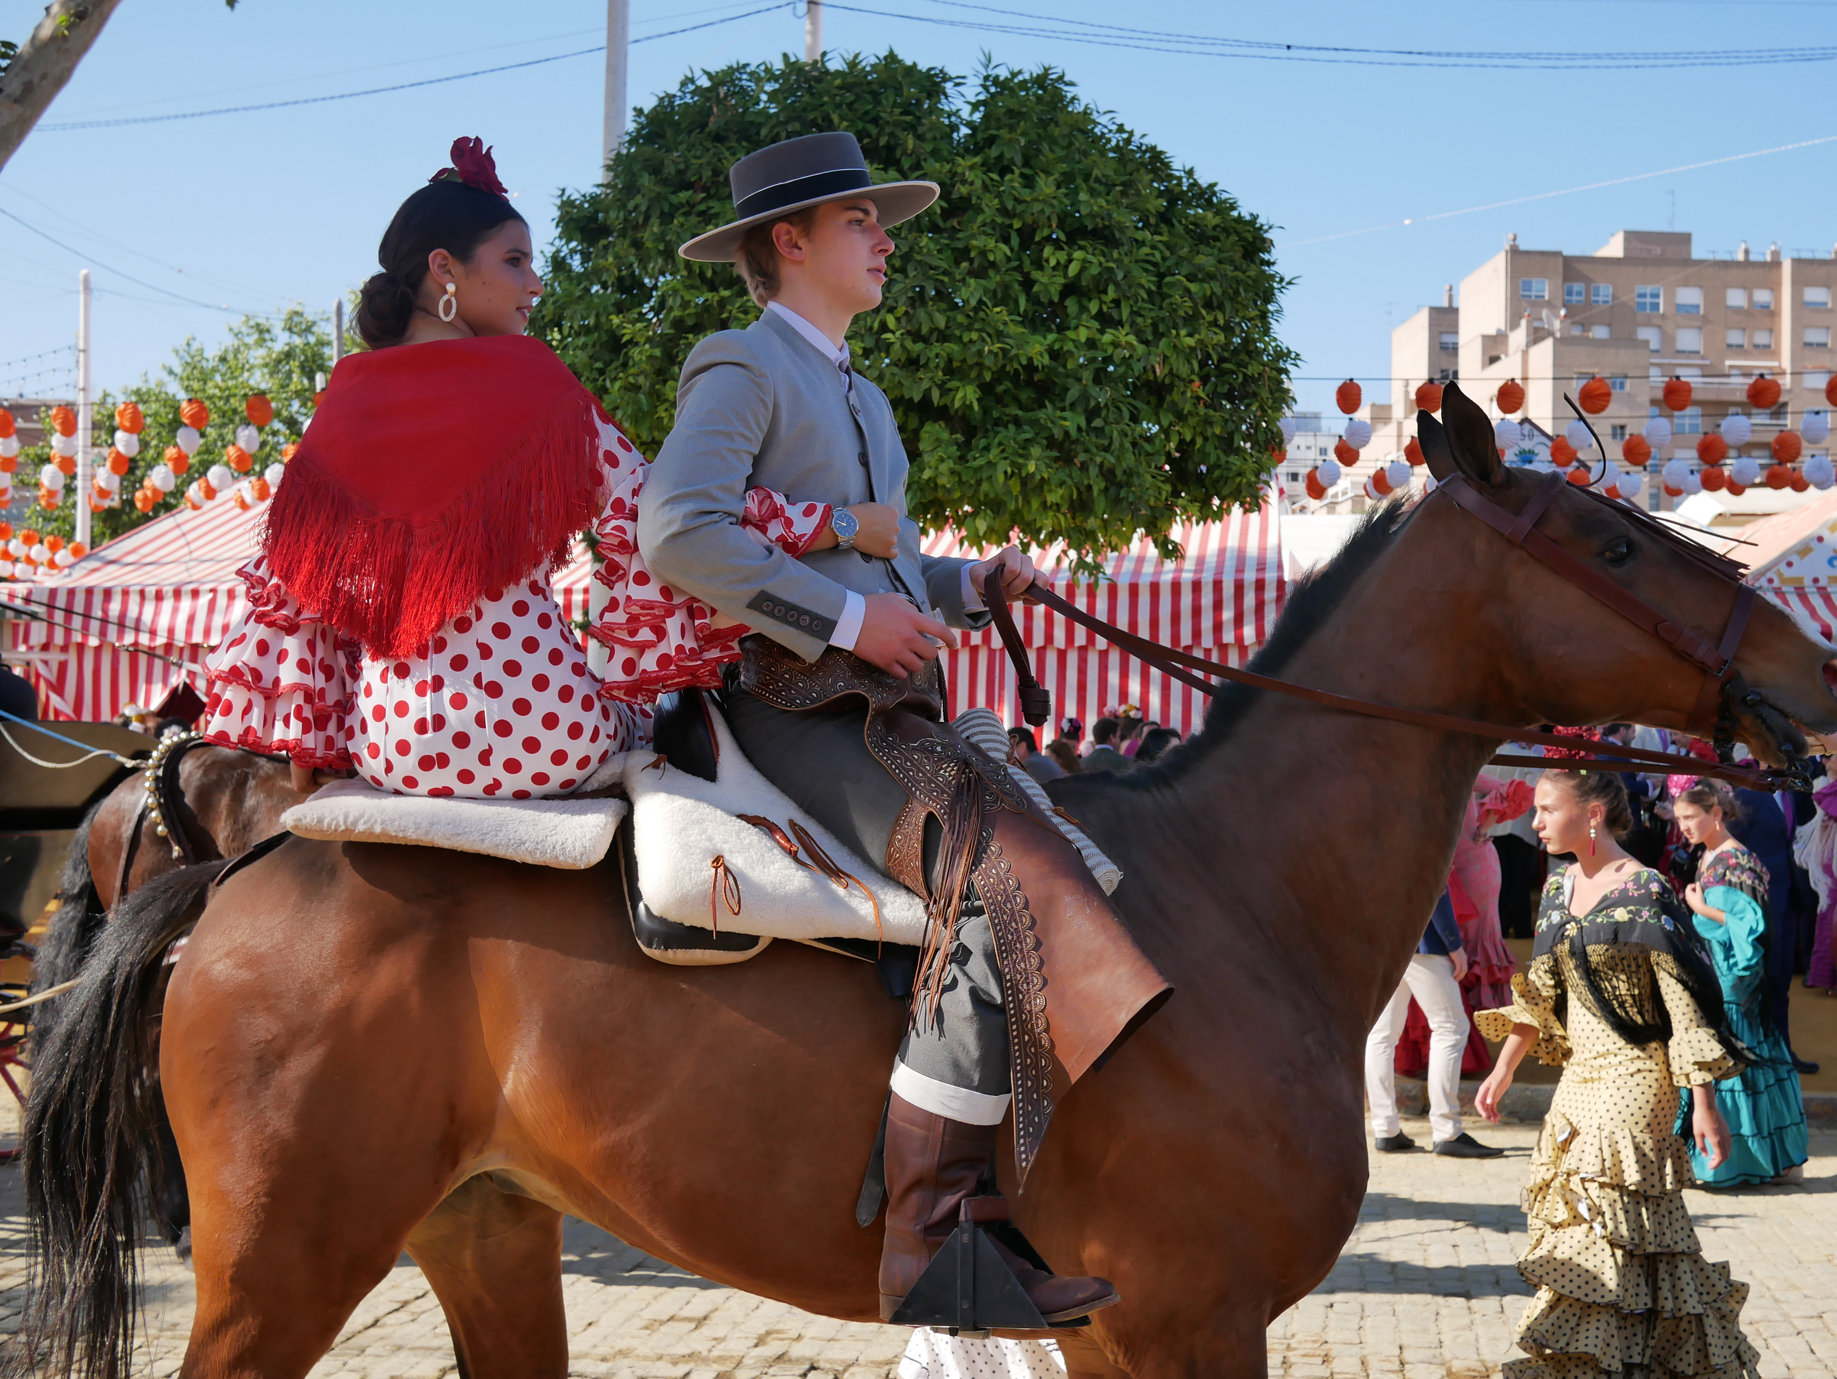 Again, it really struck me how young people were an equal part of Feria participants, showing how it's really a living tradition.